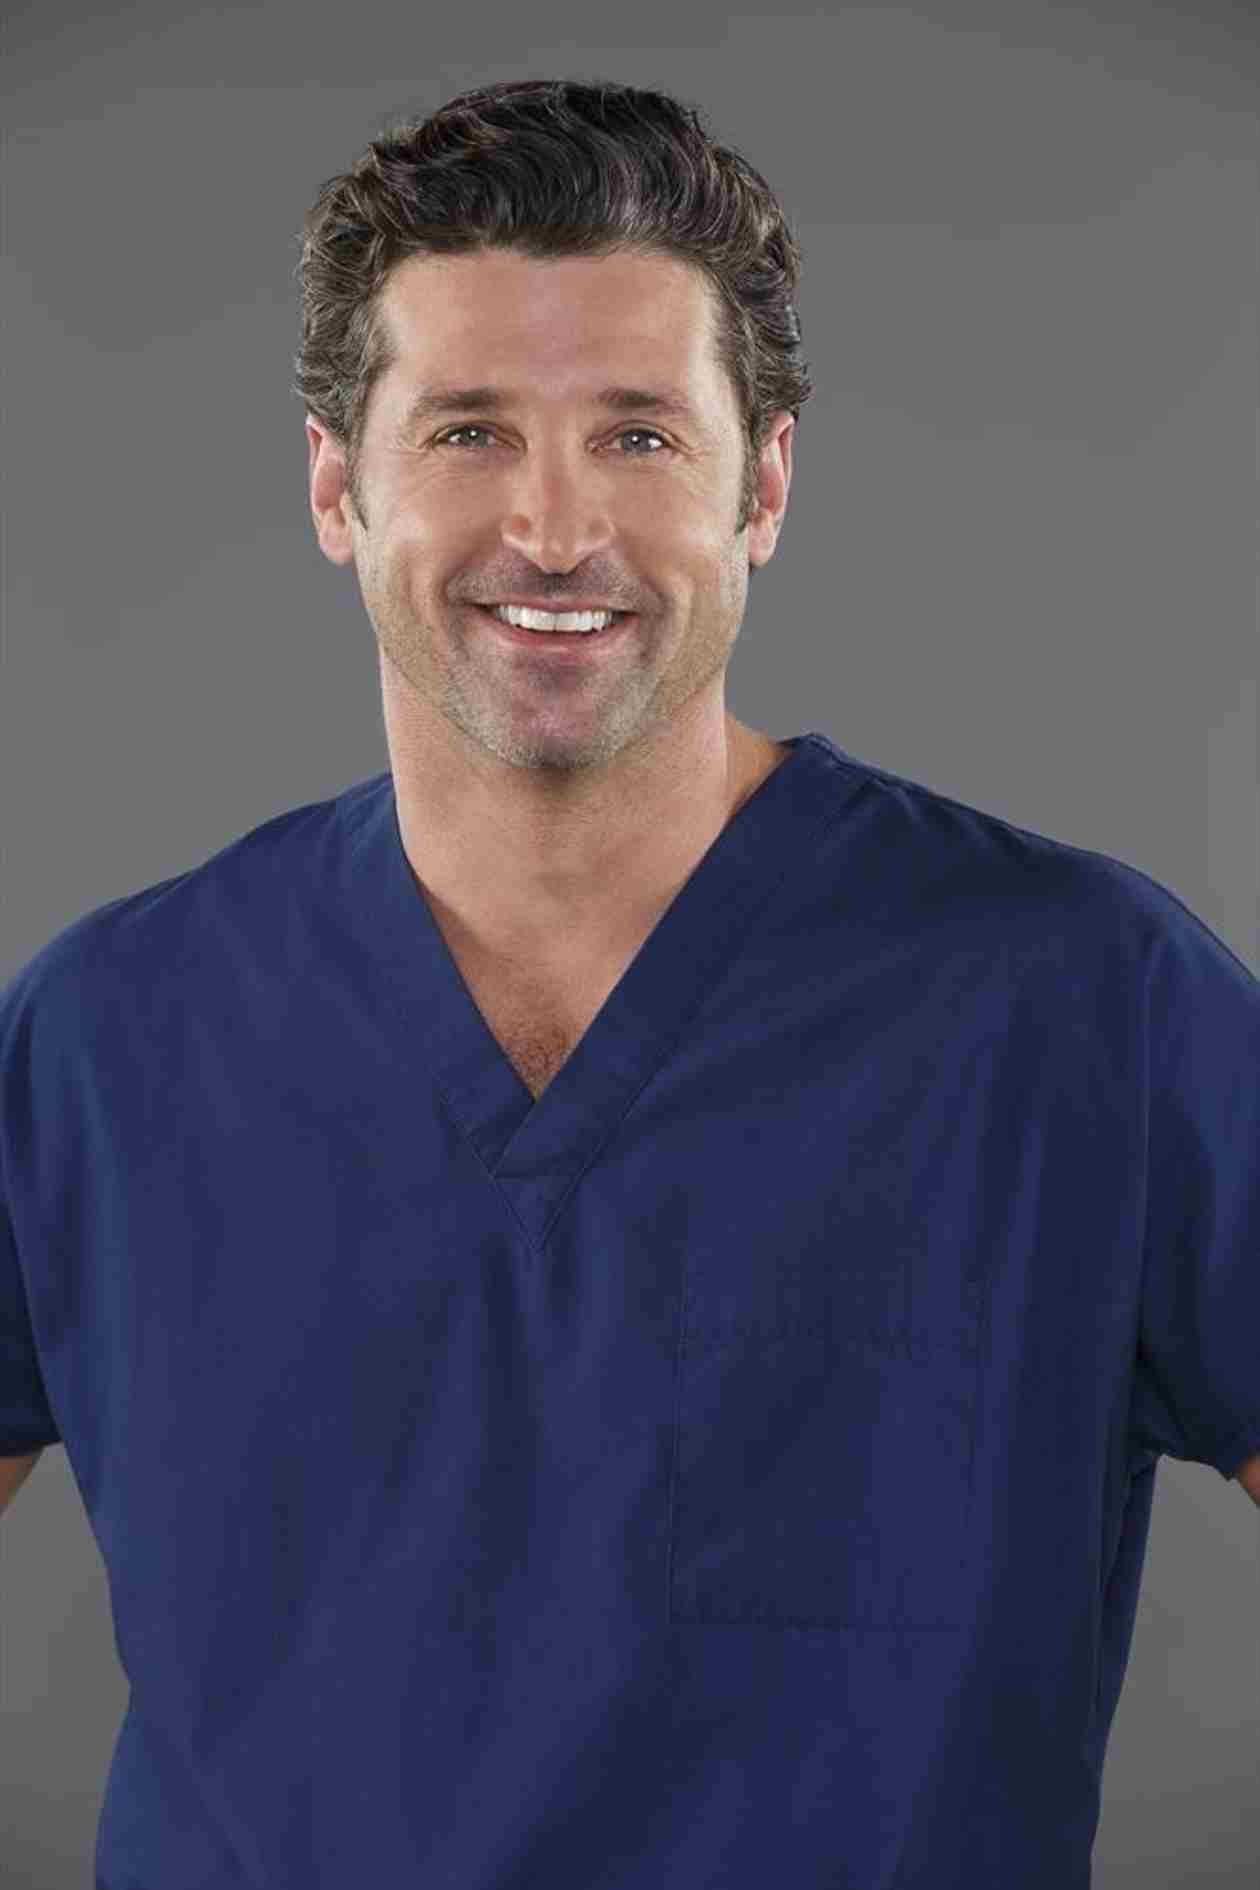 Patrick Dempsey Lands on Forbes' List of Highest-Paid TV Actors — See His Staggering Income!